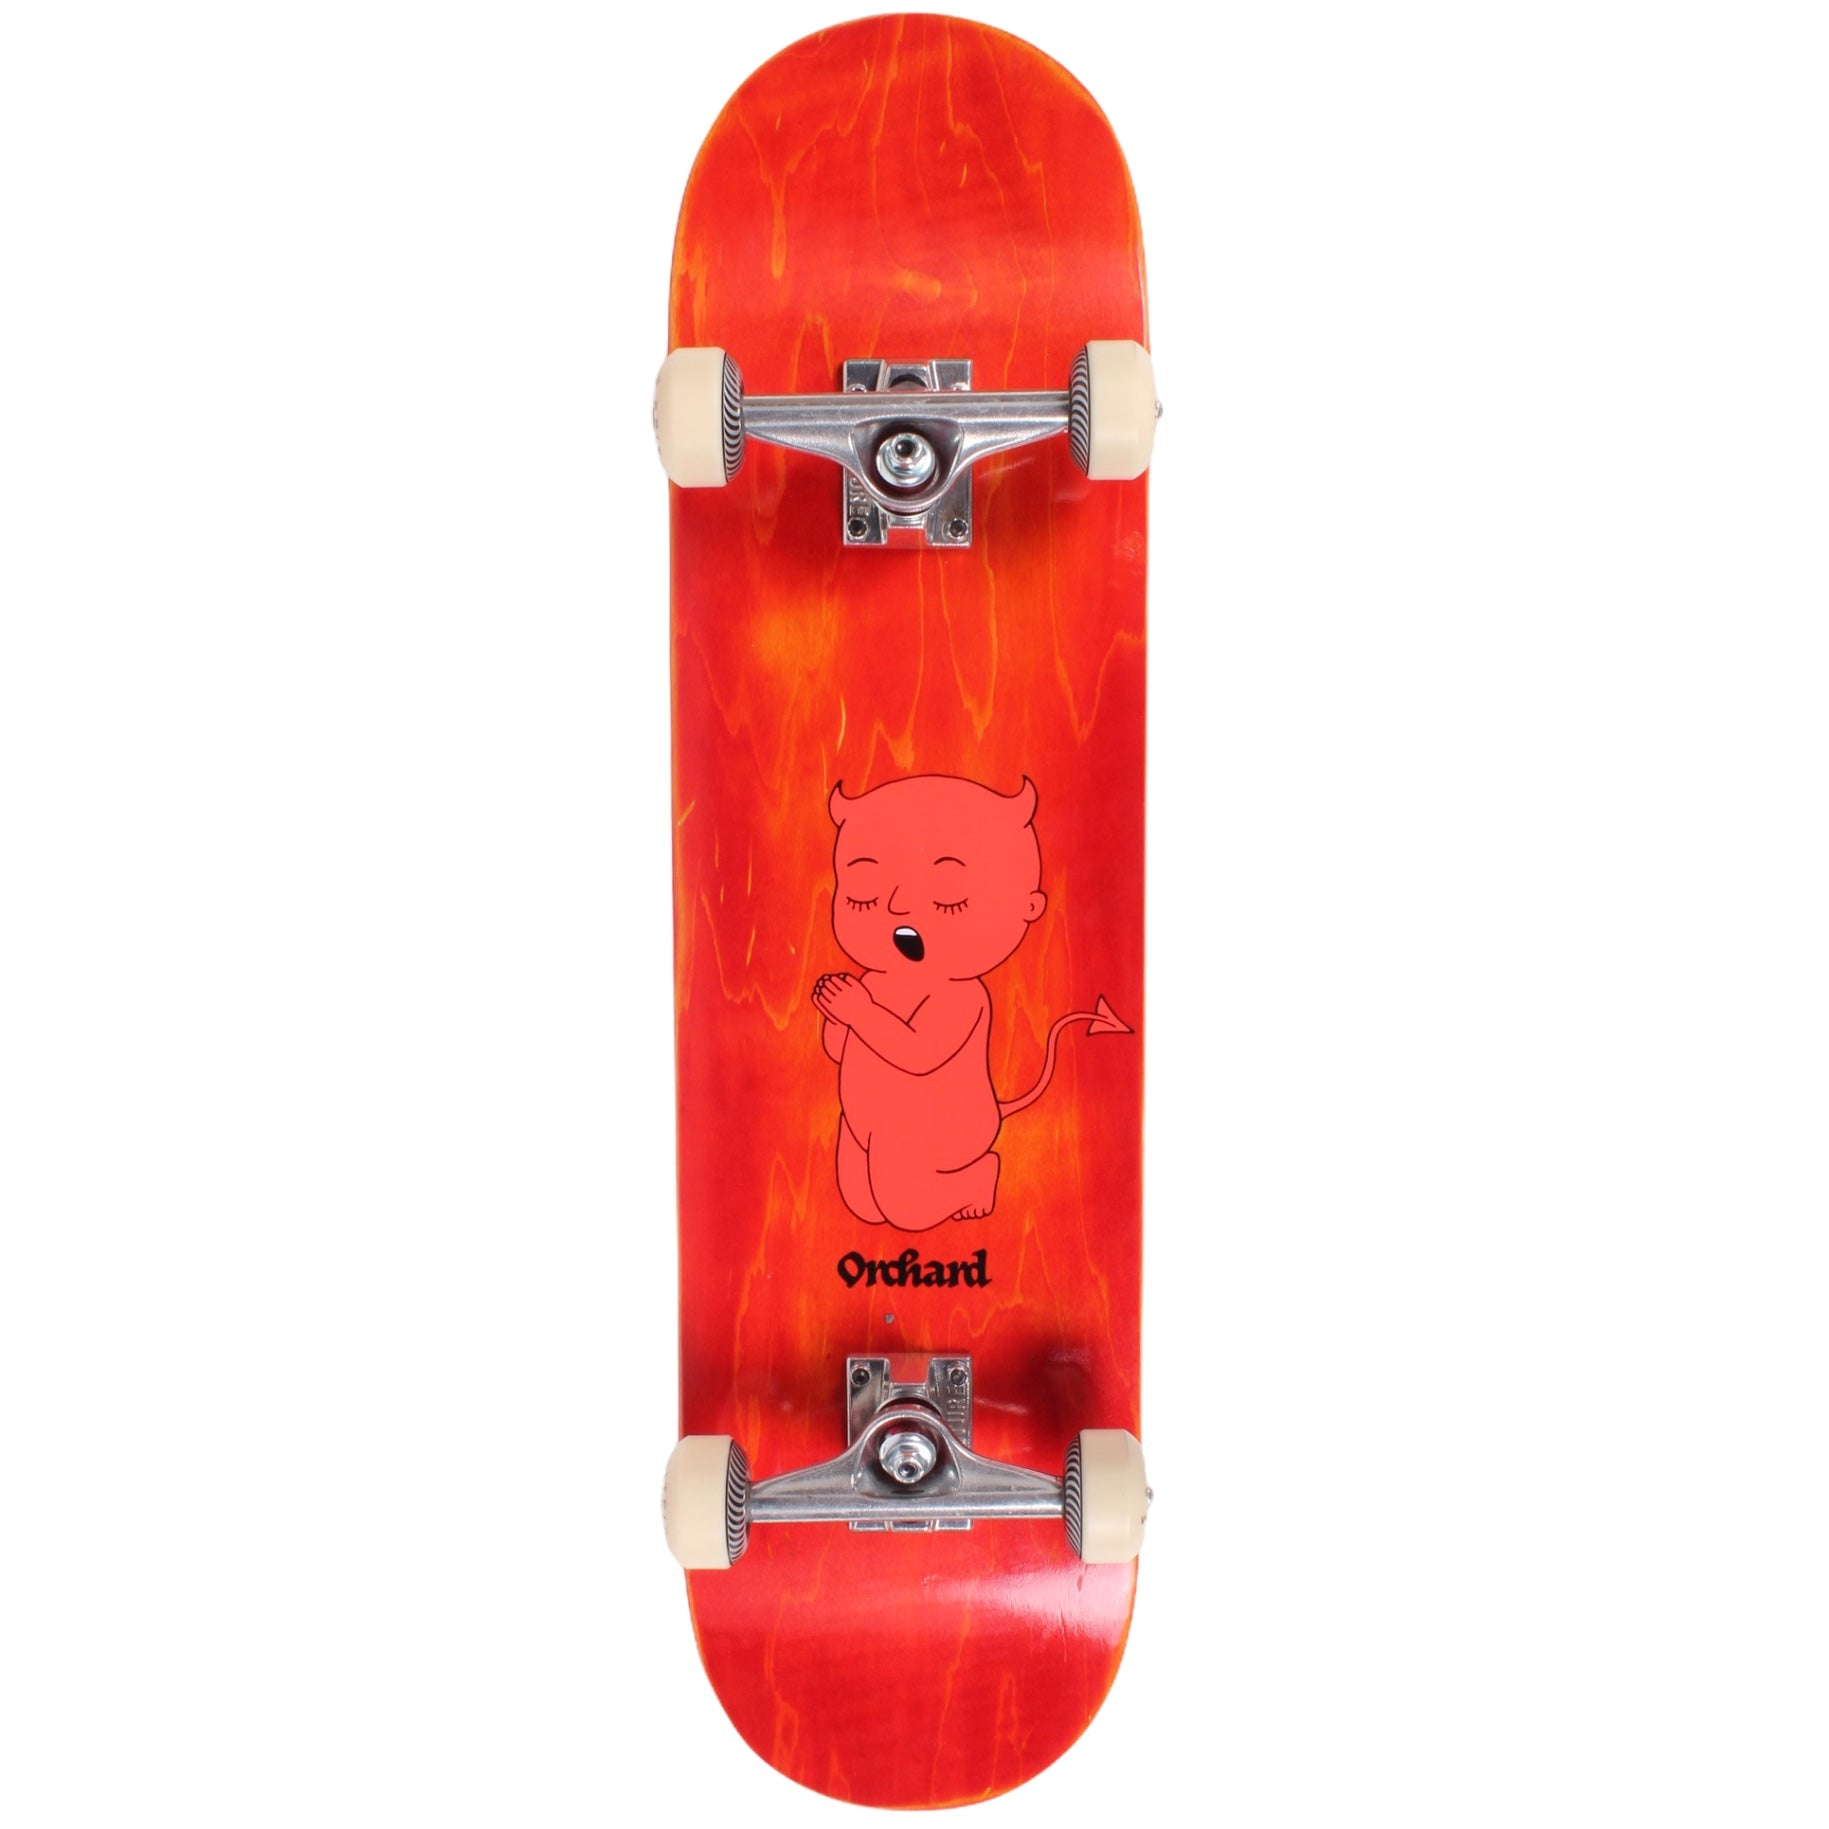 Orchard Complete Skateboard Thoughts & Prayers Red 8.0 SpitfireF4/Venture